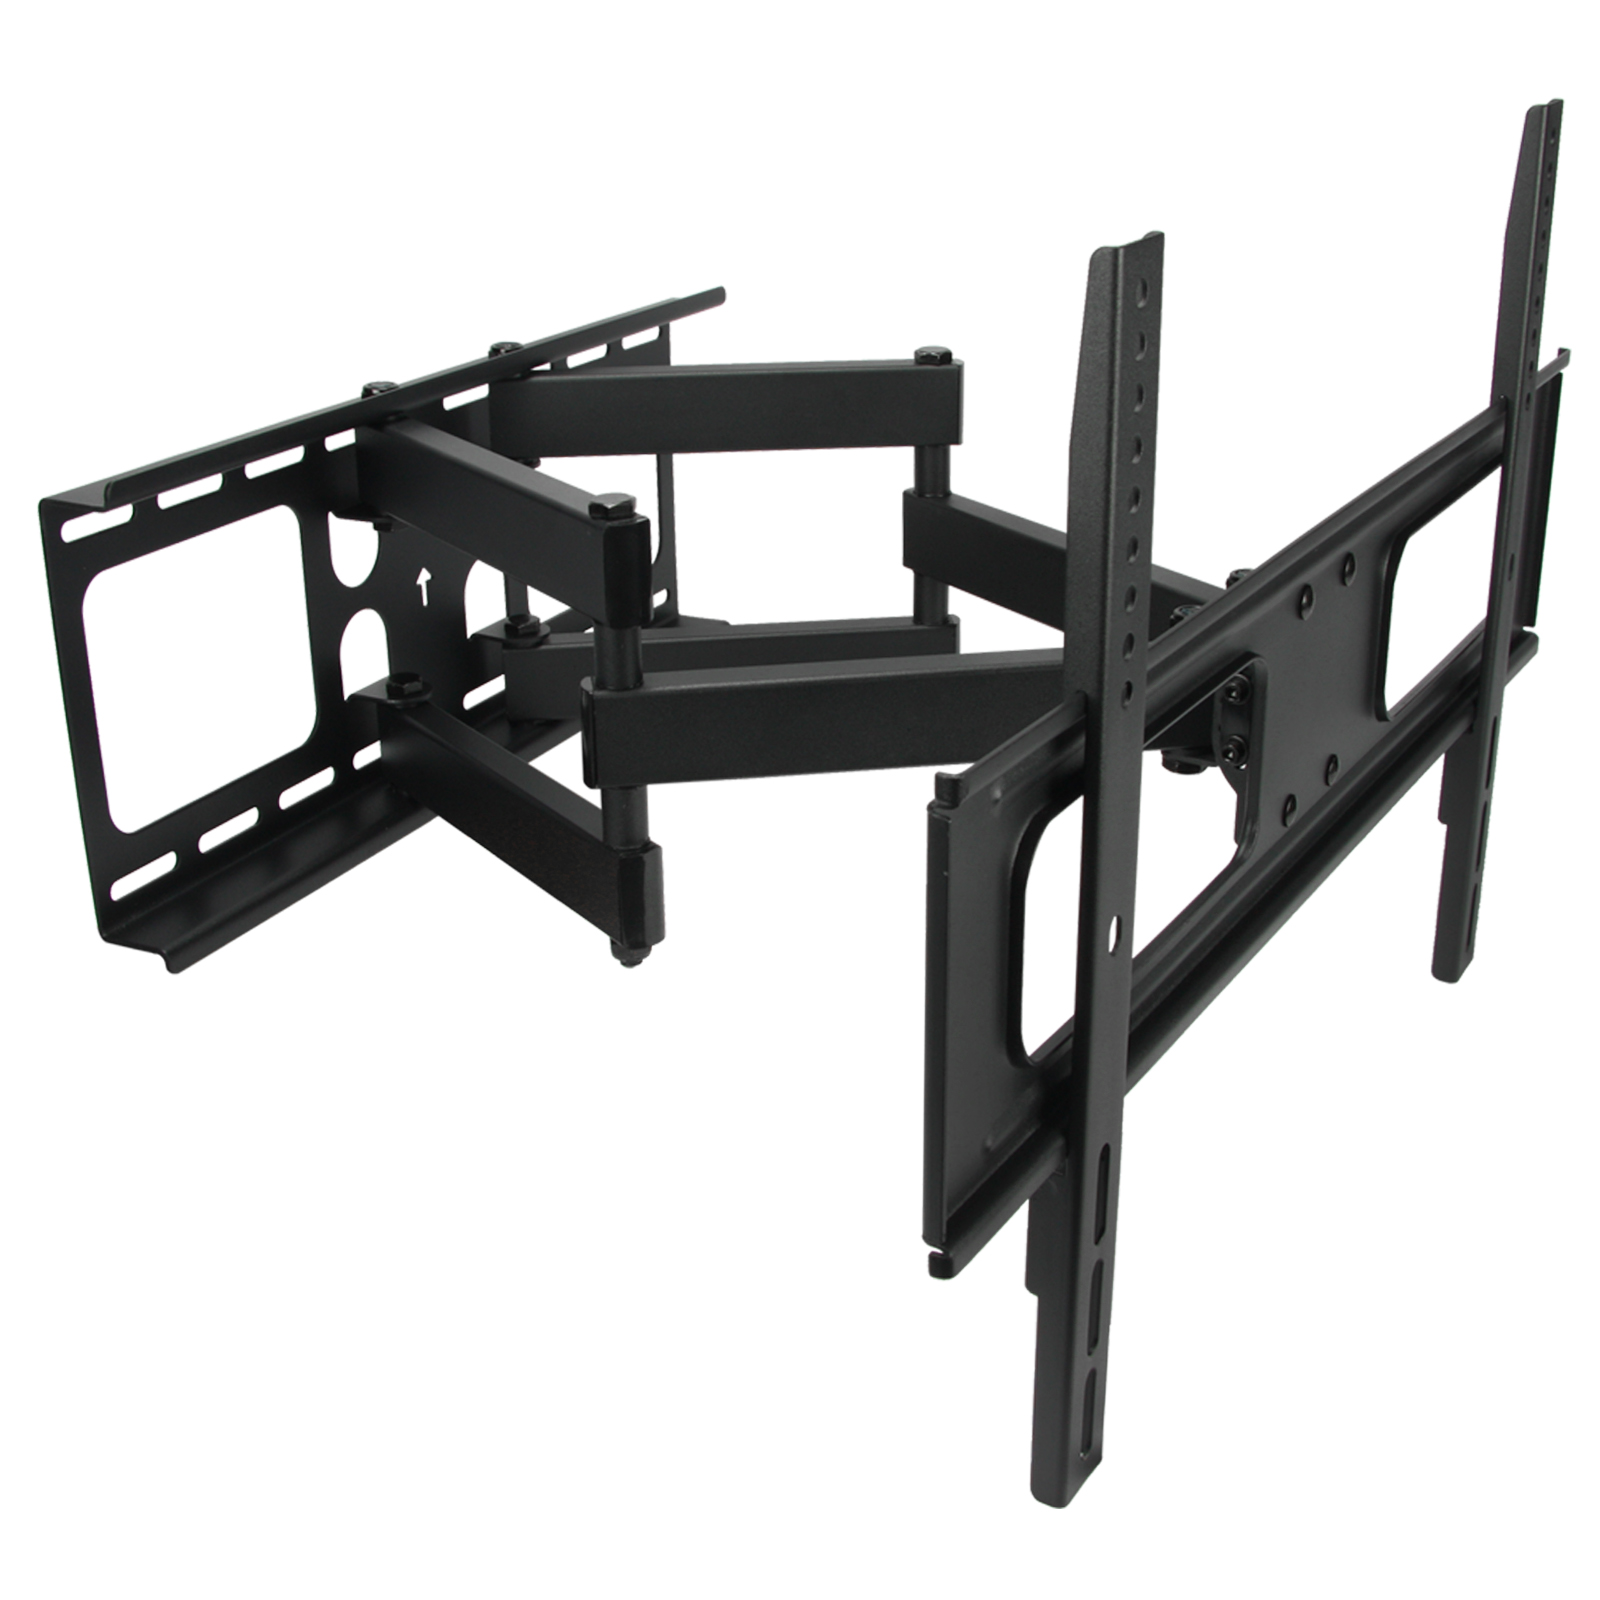 Full Motion TV Wall Mount Double